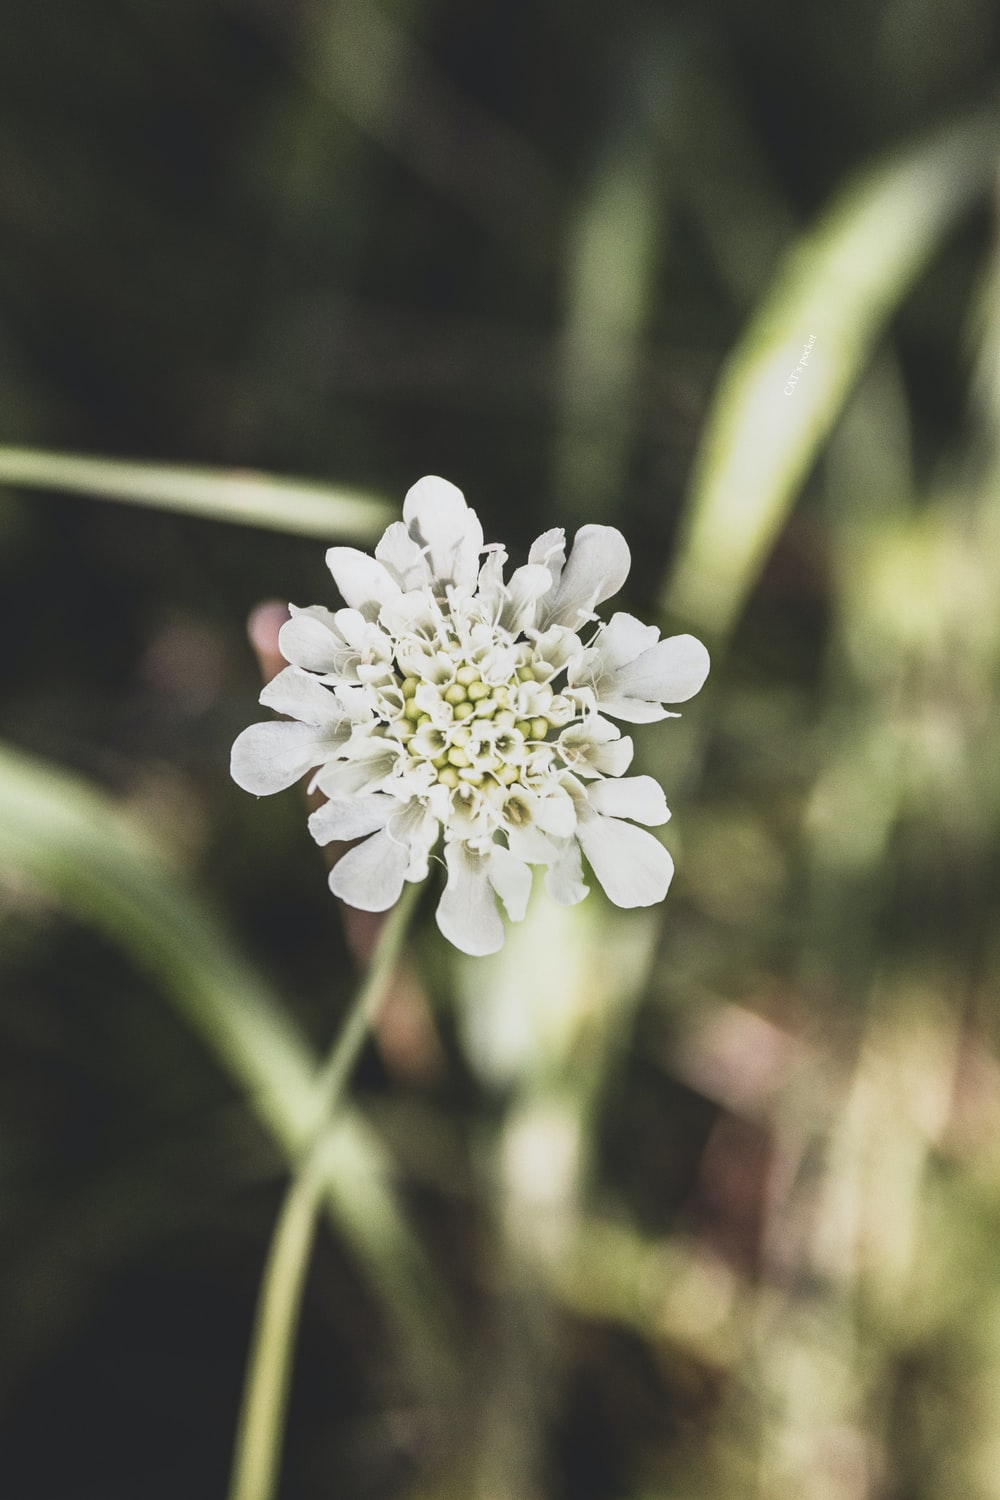 white flower in tilt shift lens